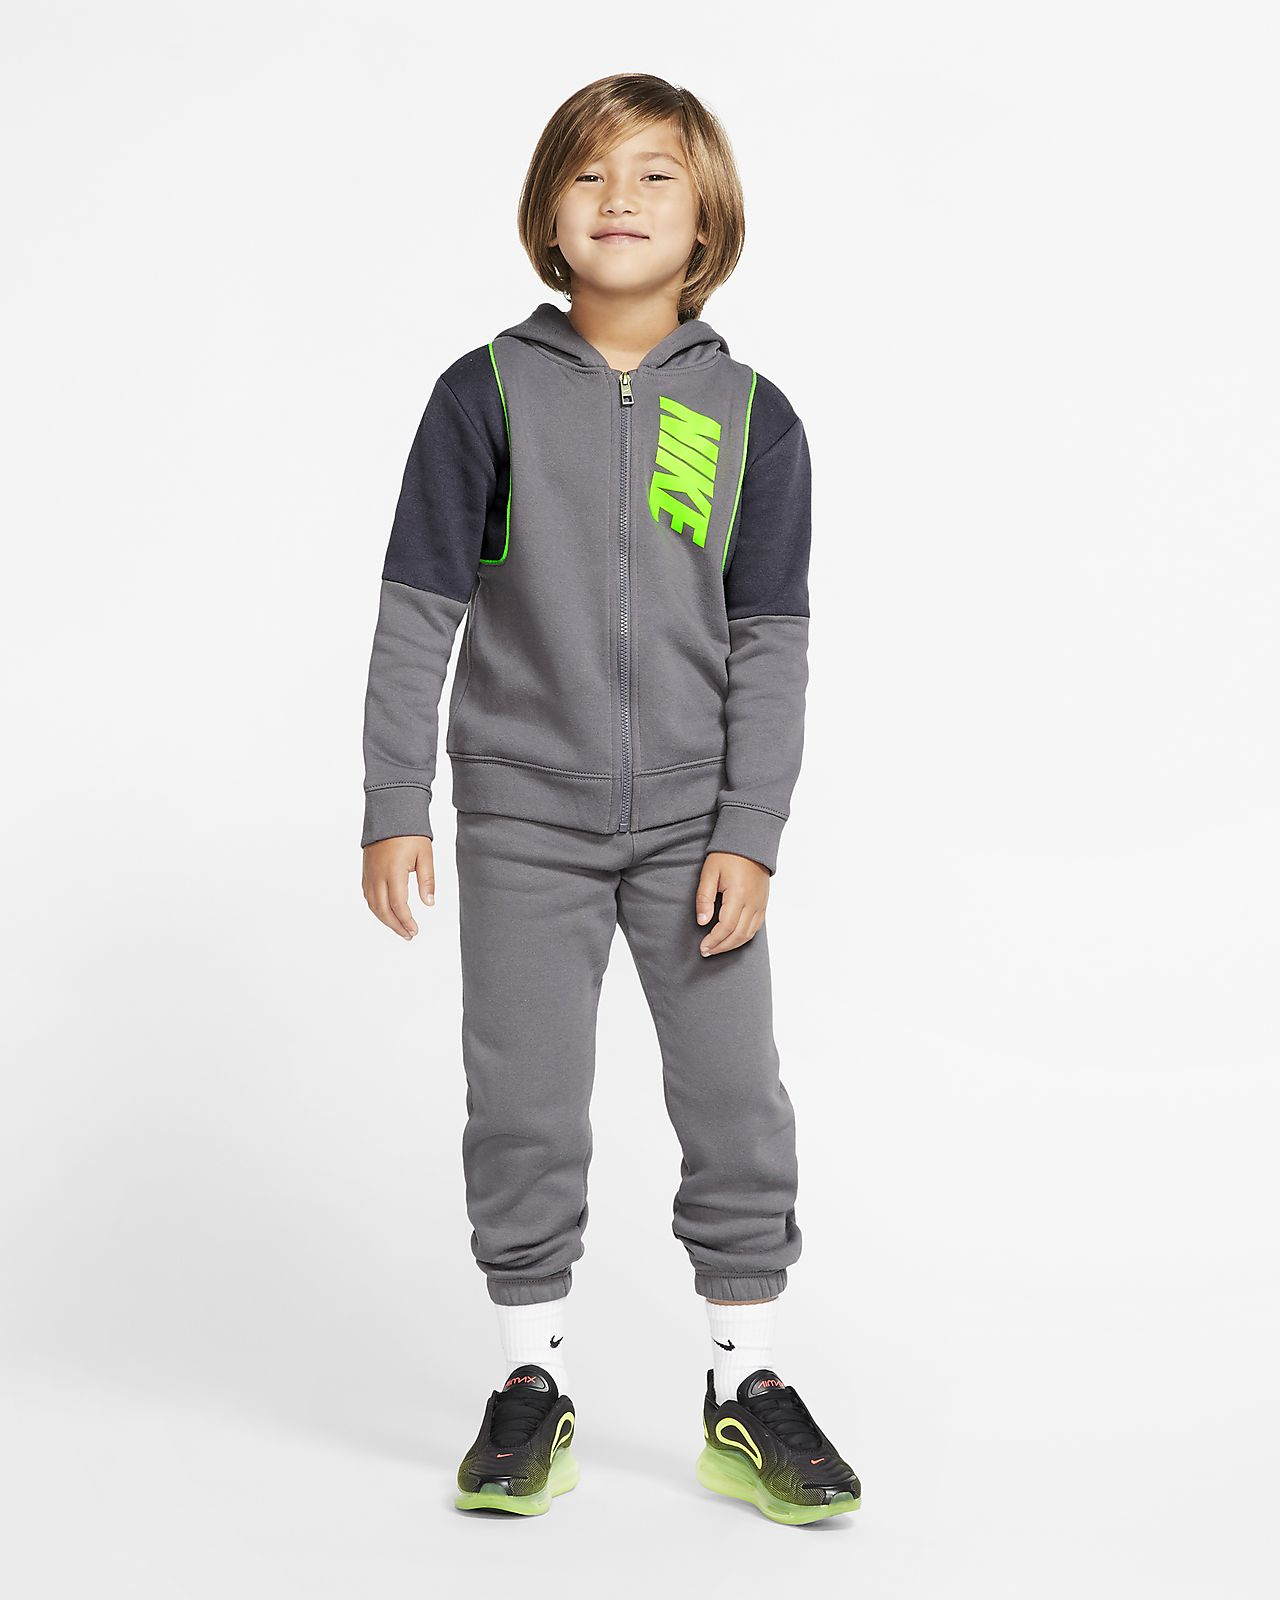 Nike Little Kids' Jacket and Pants Set